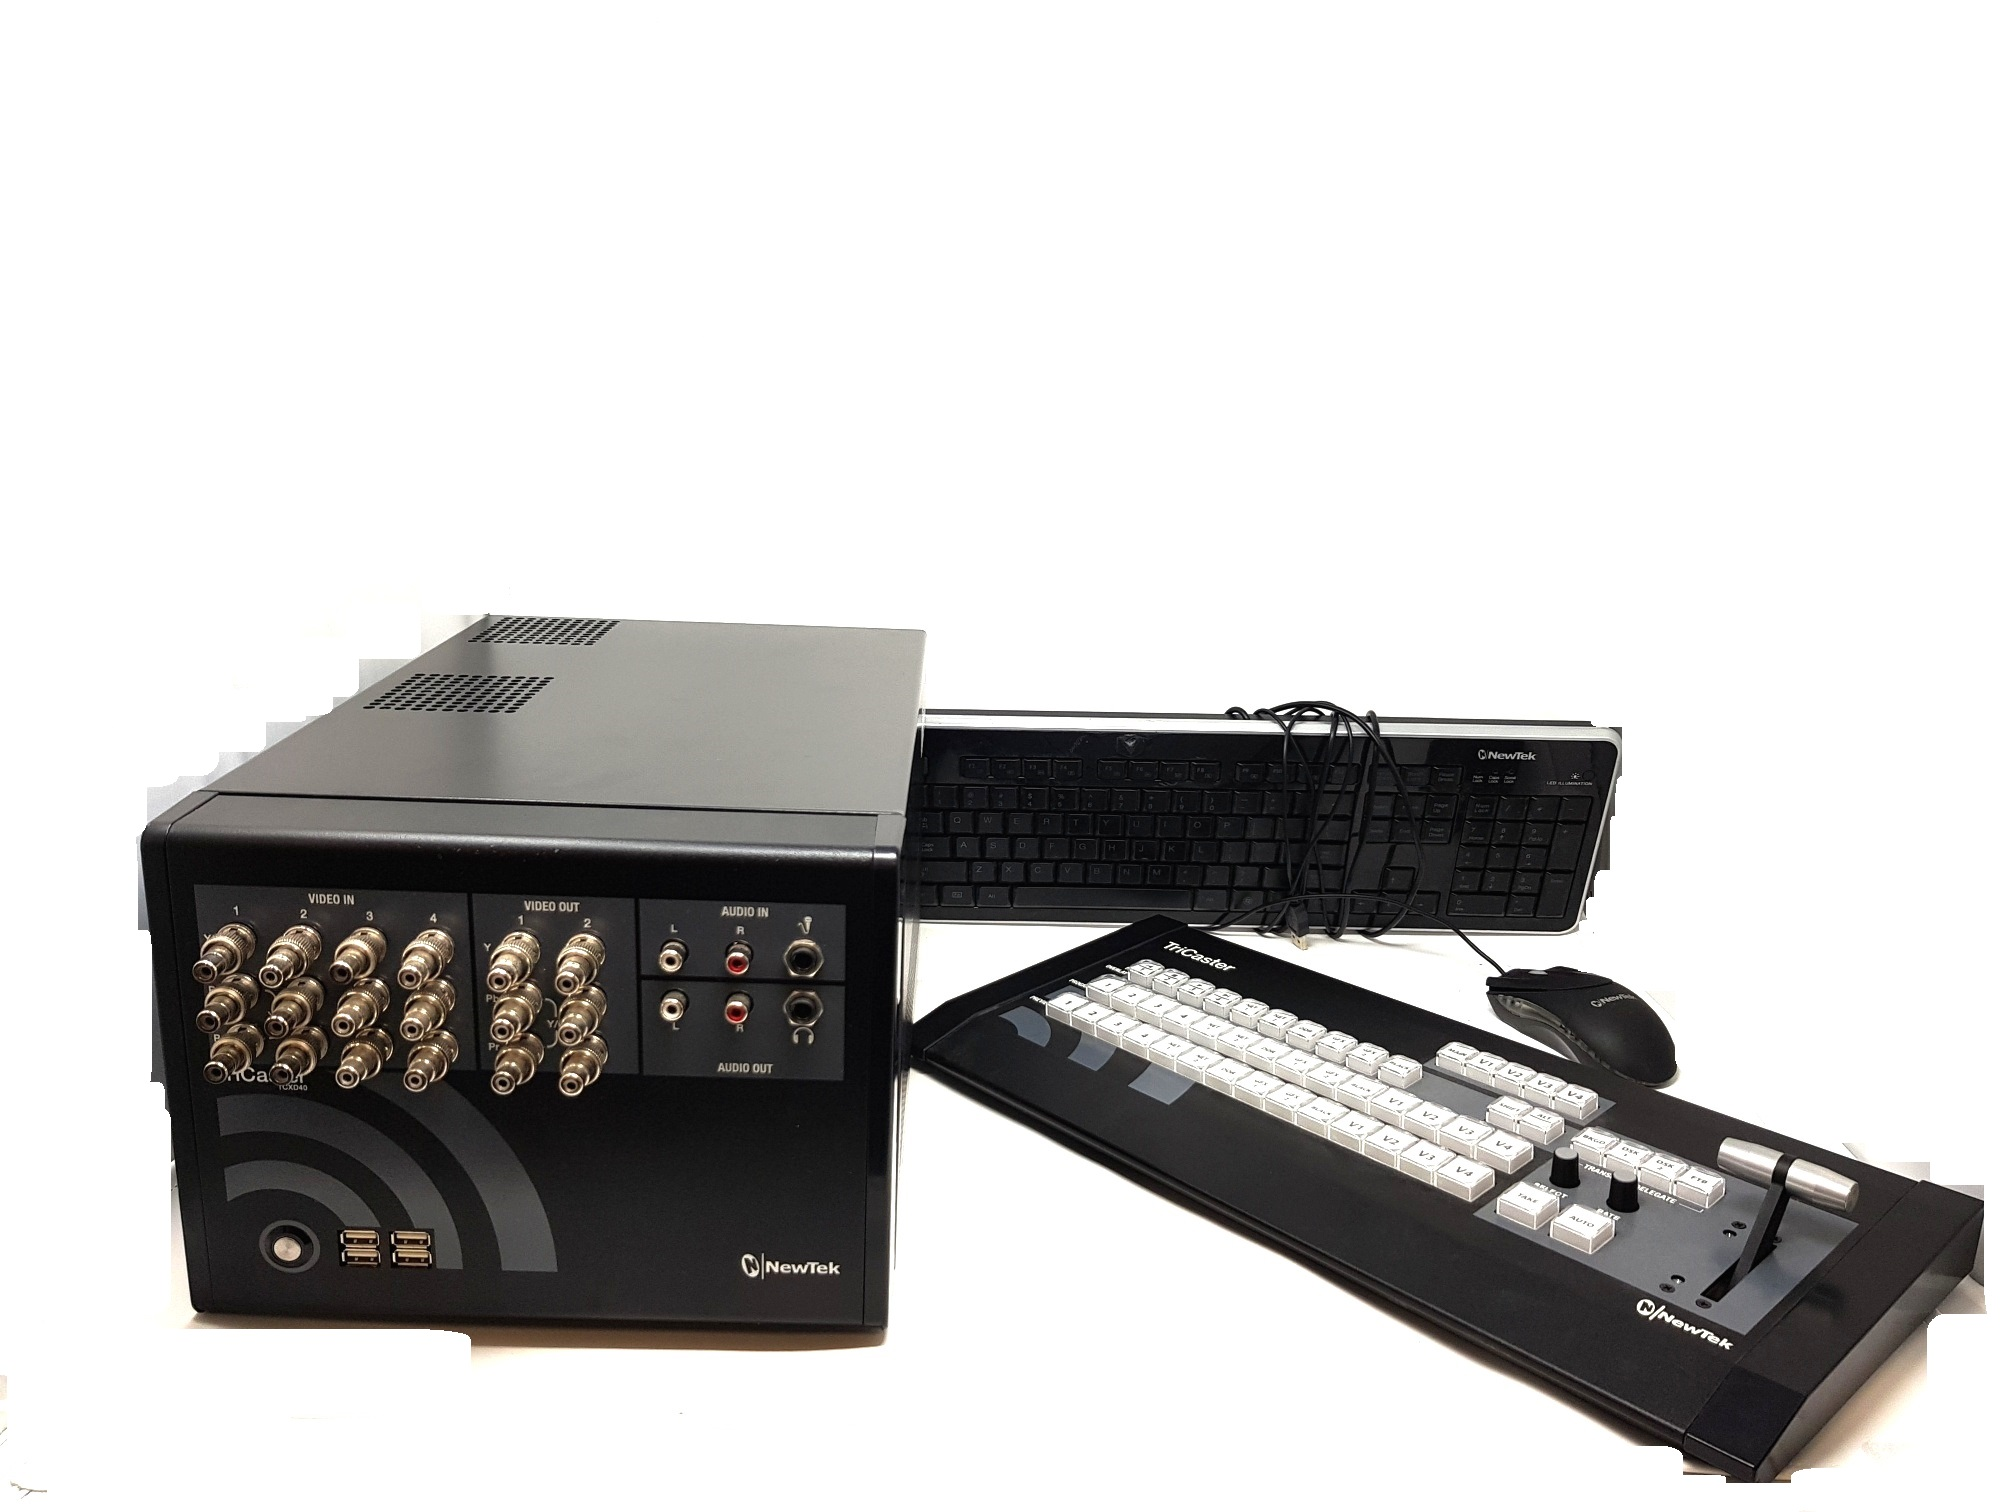 Newtek Tricaster TCXD40 and Tricaster Mini Control Surface (TC40) - Image #1